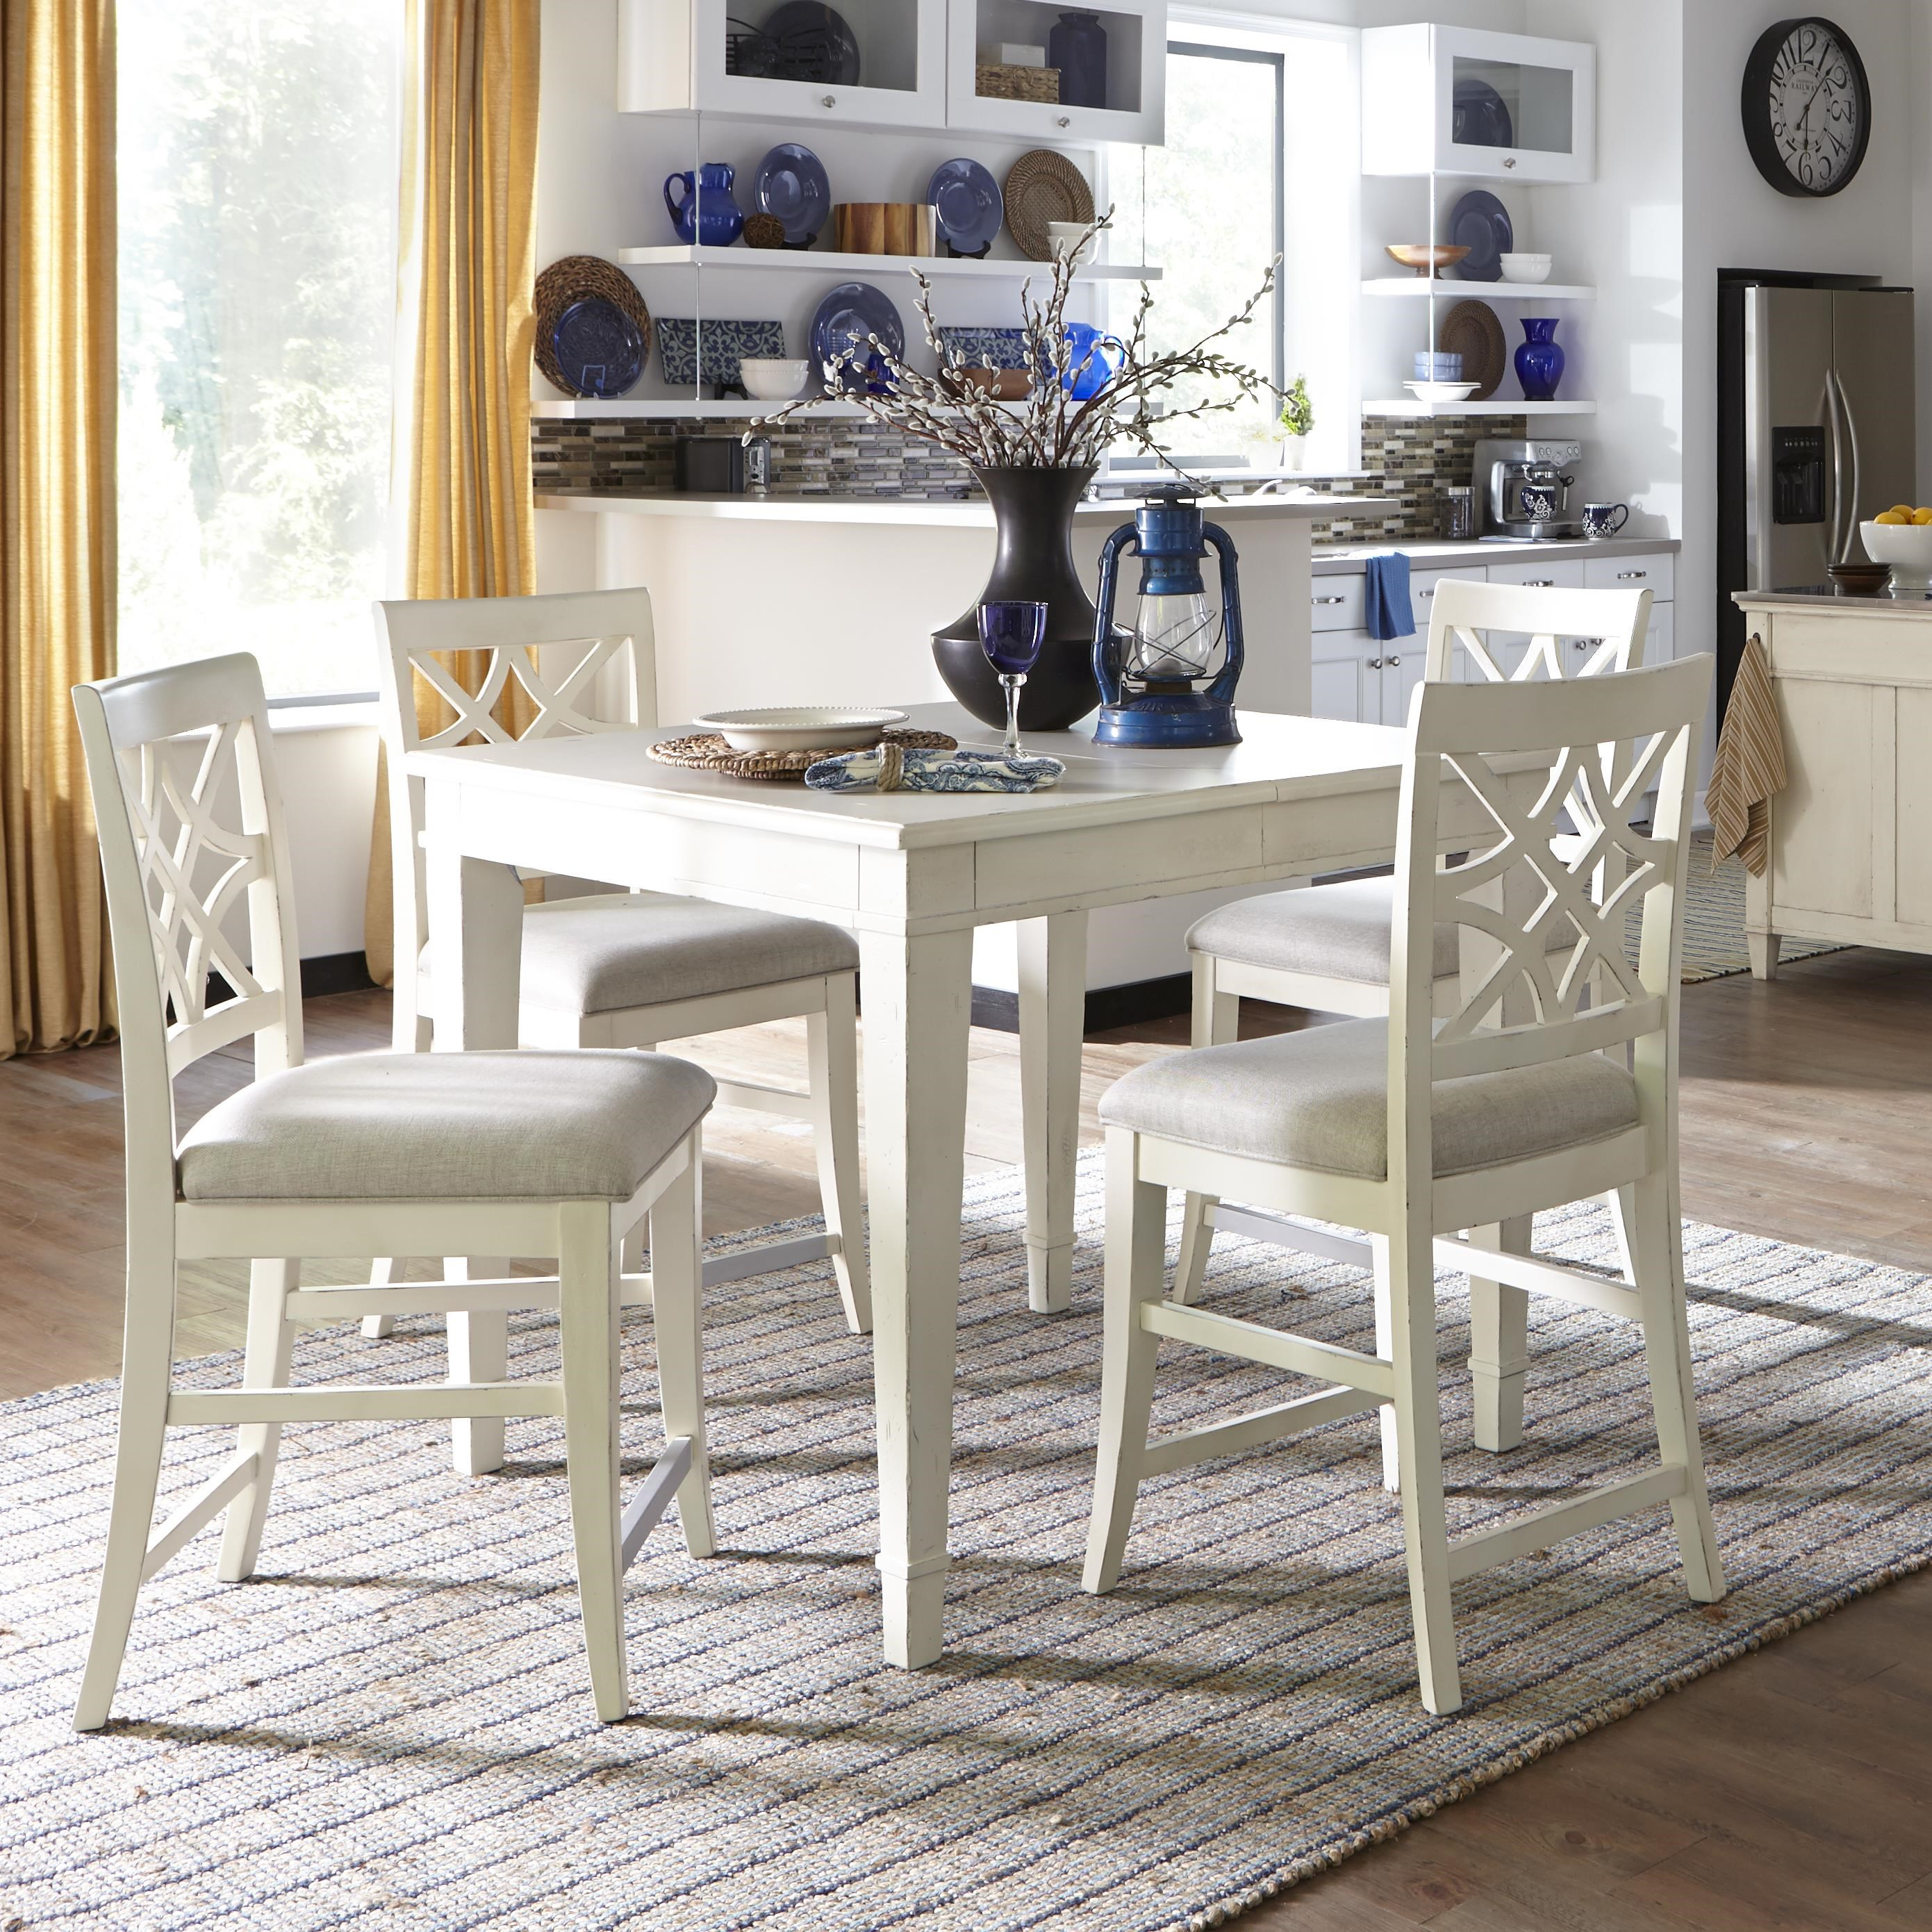 how to set all table width to be equal